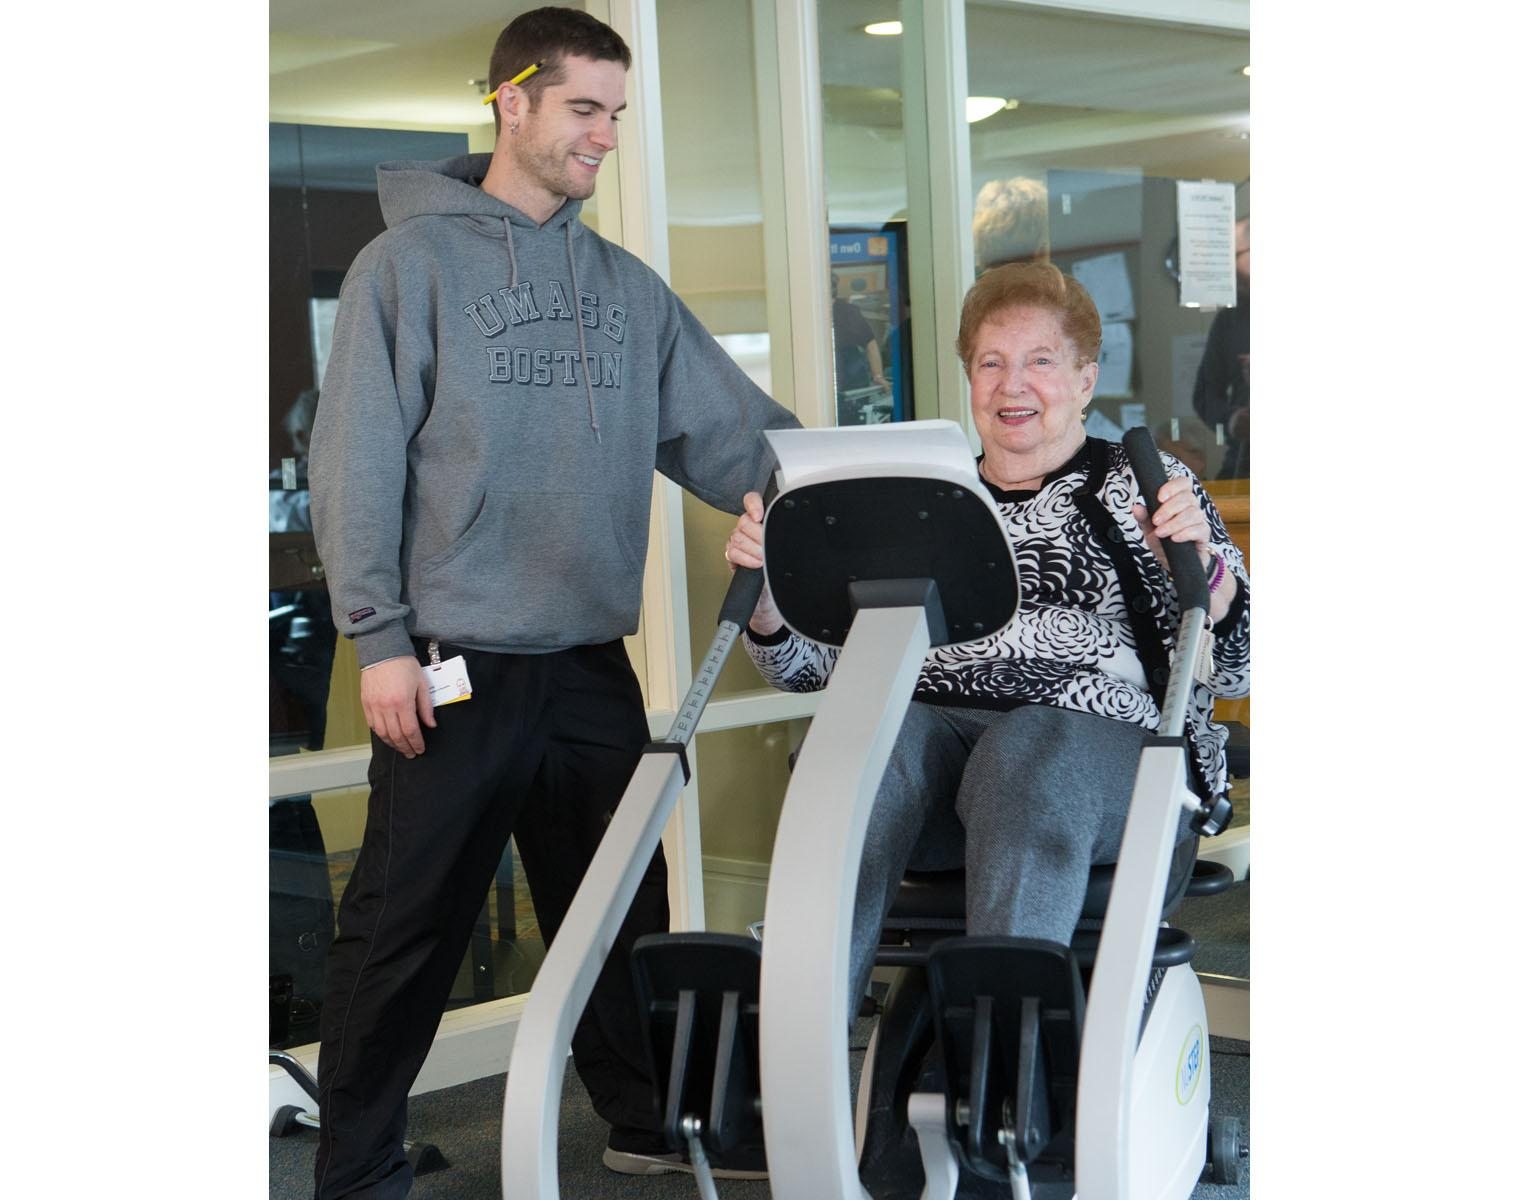 A resident uses specialized fitness equipment for seniors as an exercise instructor looks on.